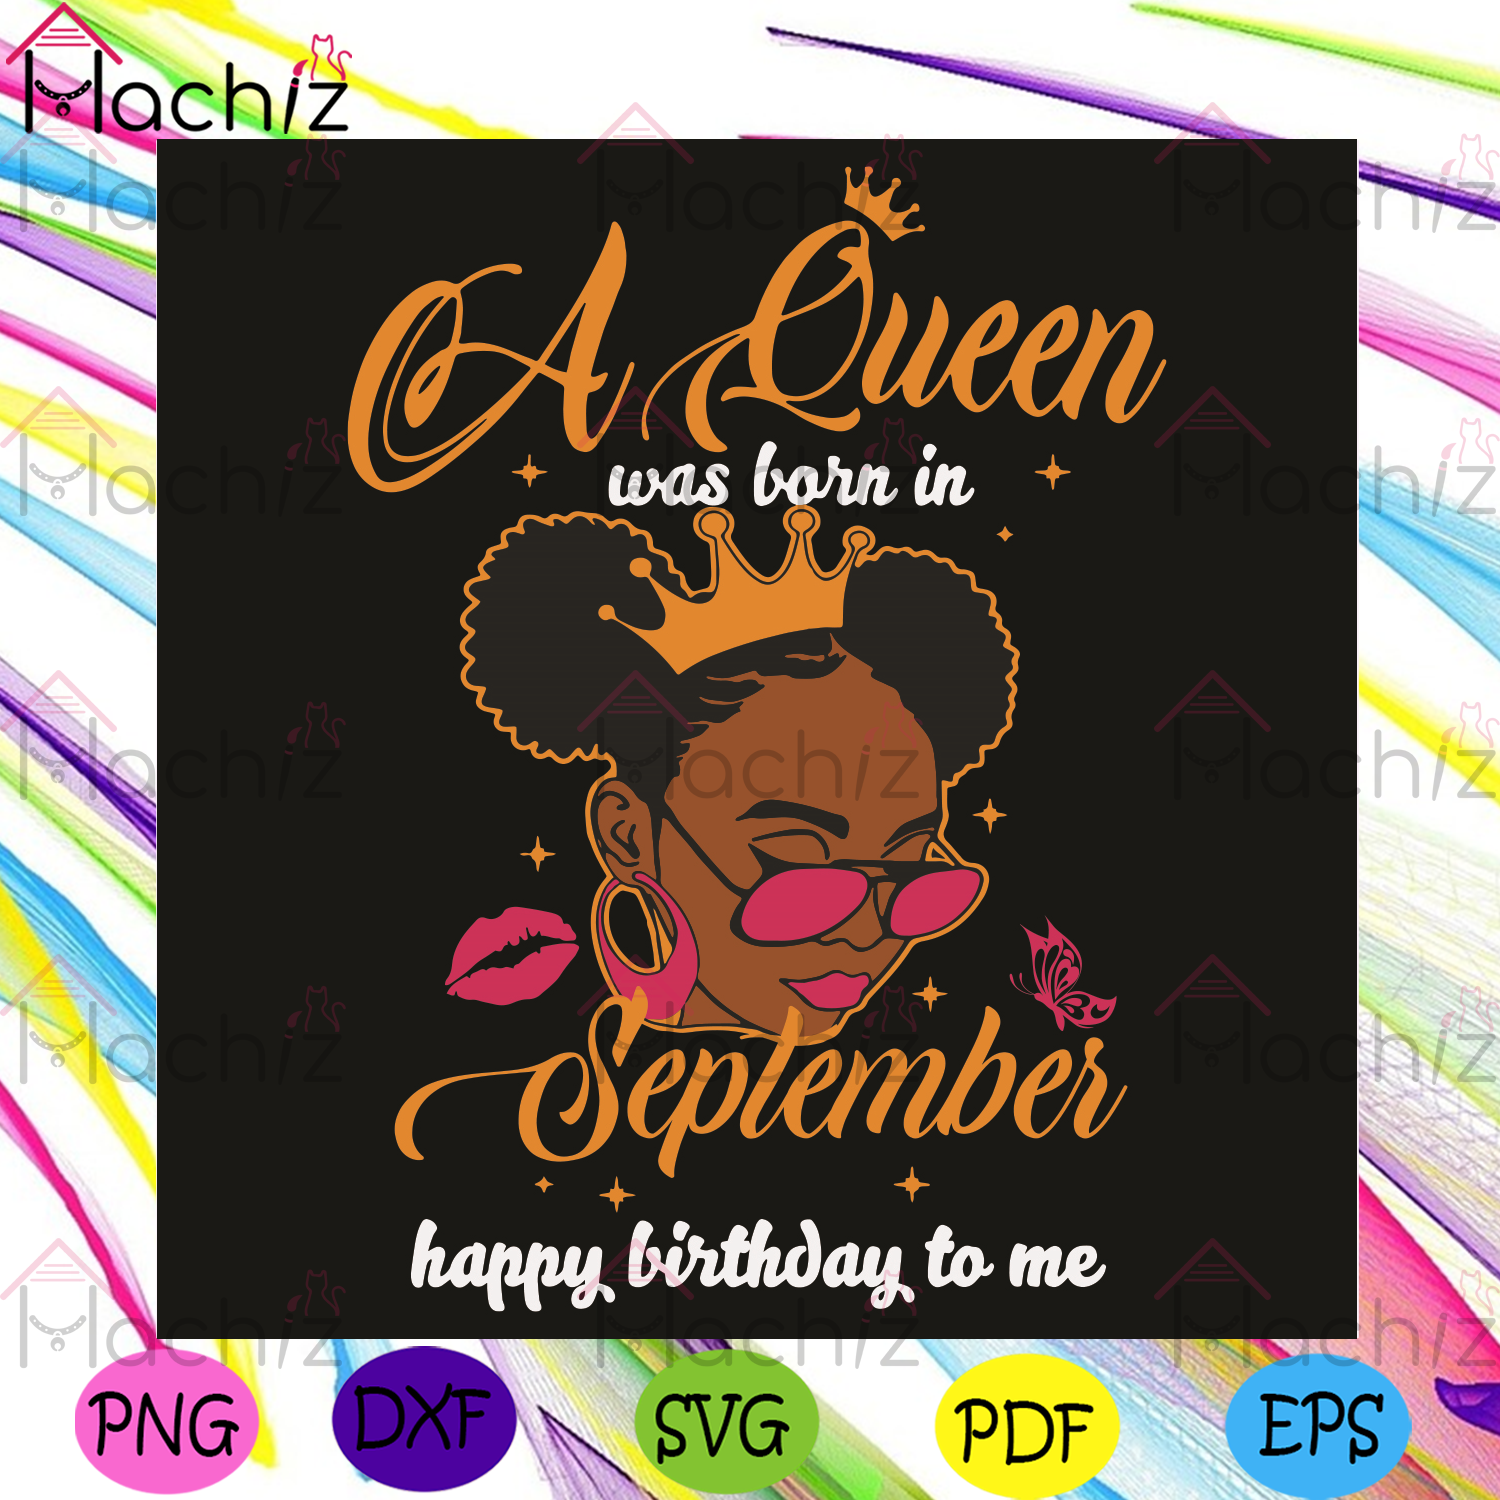 A queen was born in september happy birthday to me svg, birthday svg, queen born in september svg, girl born in september svg, happy birthday svg, september queen svg, september birthday svg, birthday gifts svg